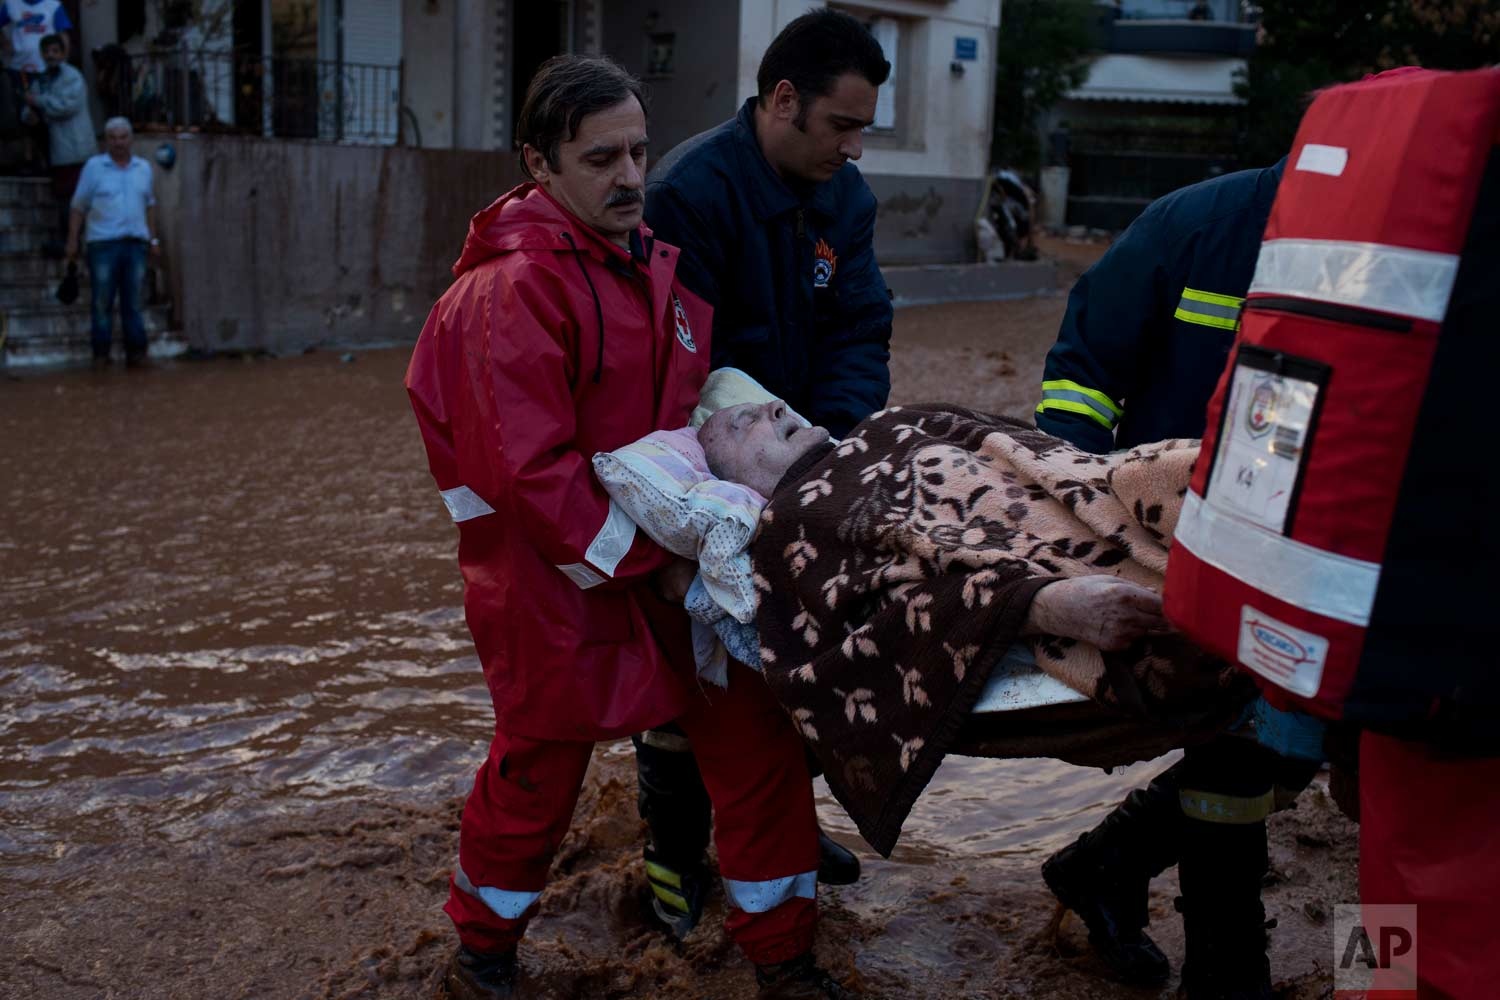 In this Wednesday, Nov. 15, 2017 photo, Red Cross personnel and firefighters carry an elderly man to an ambulance in town of Mandra western Athens, following deadly flash floods that hit the area. (AP Photo/Petros Giannakouris)